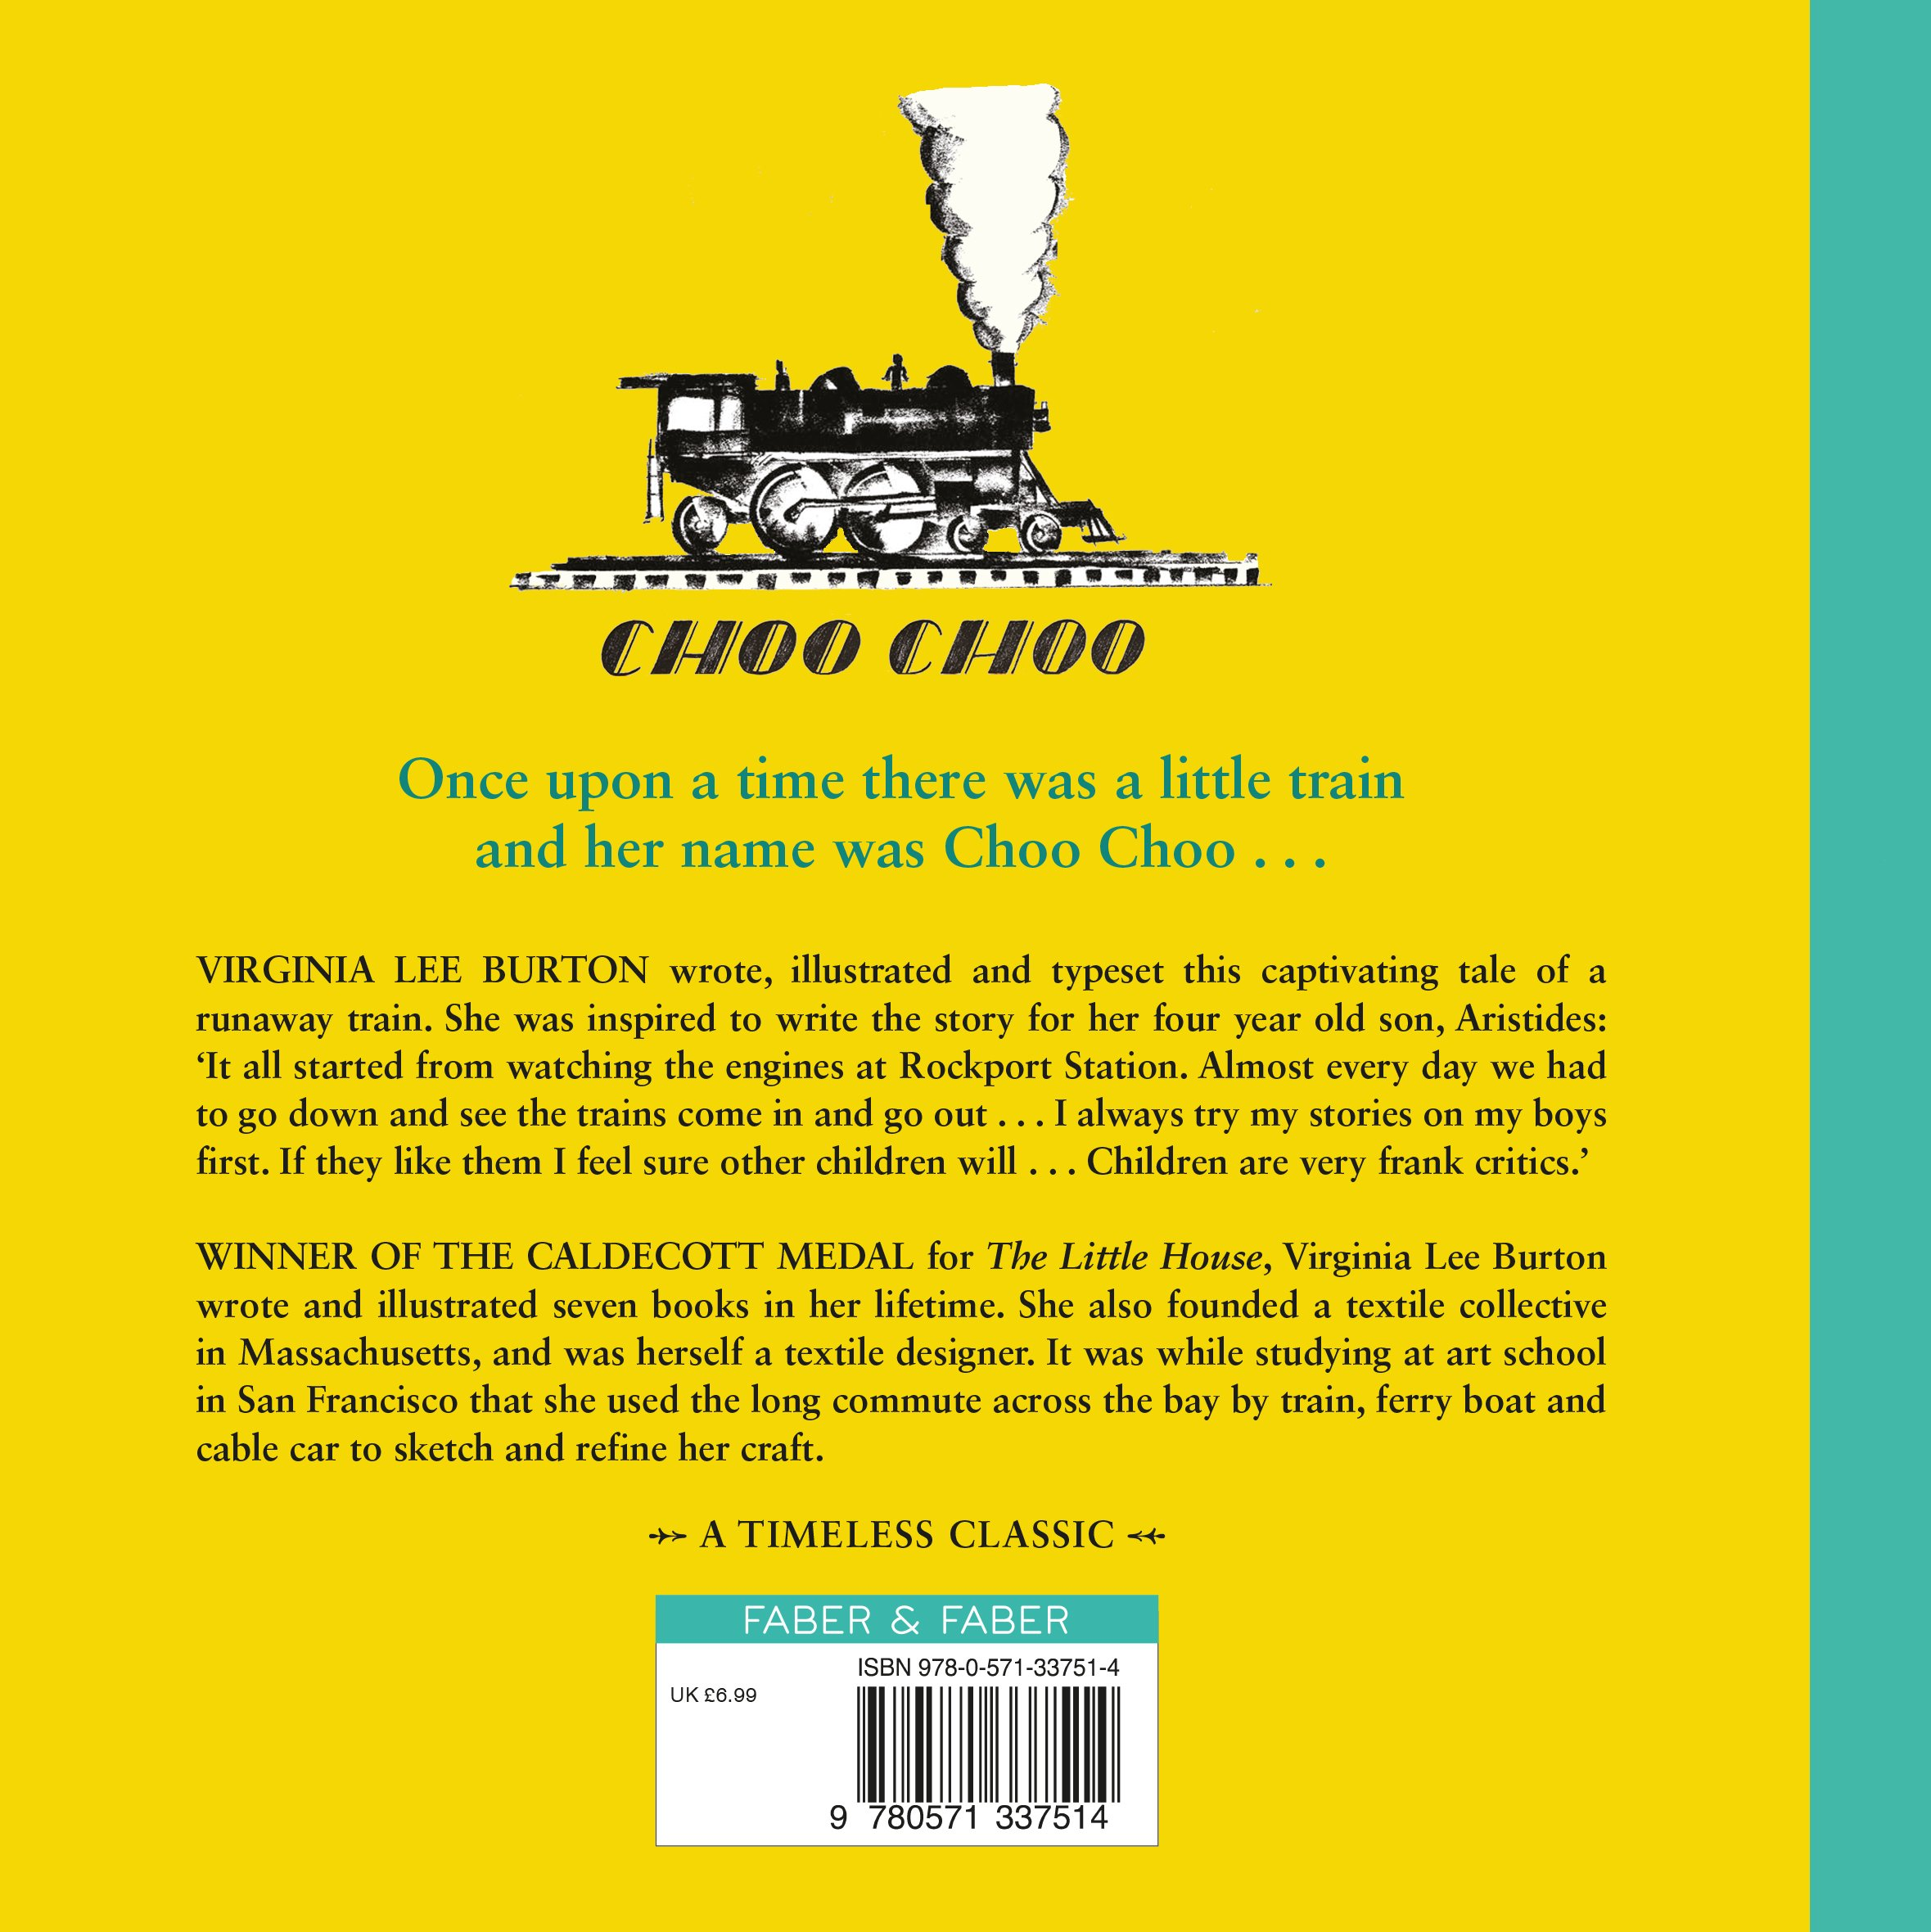 Choo Choo (Faber Heritage Books): Amazon.co.uk: Virginia Lee Burton:  9780571337514: Books